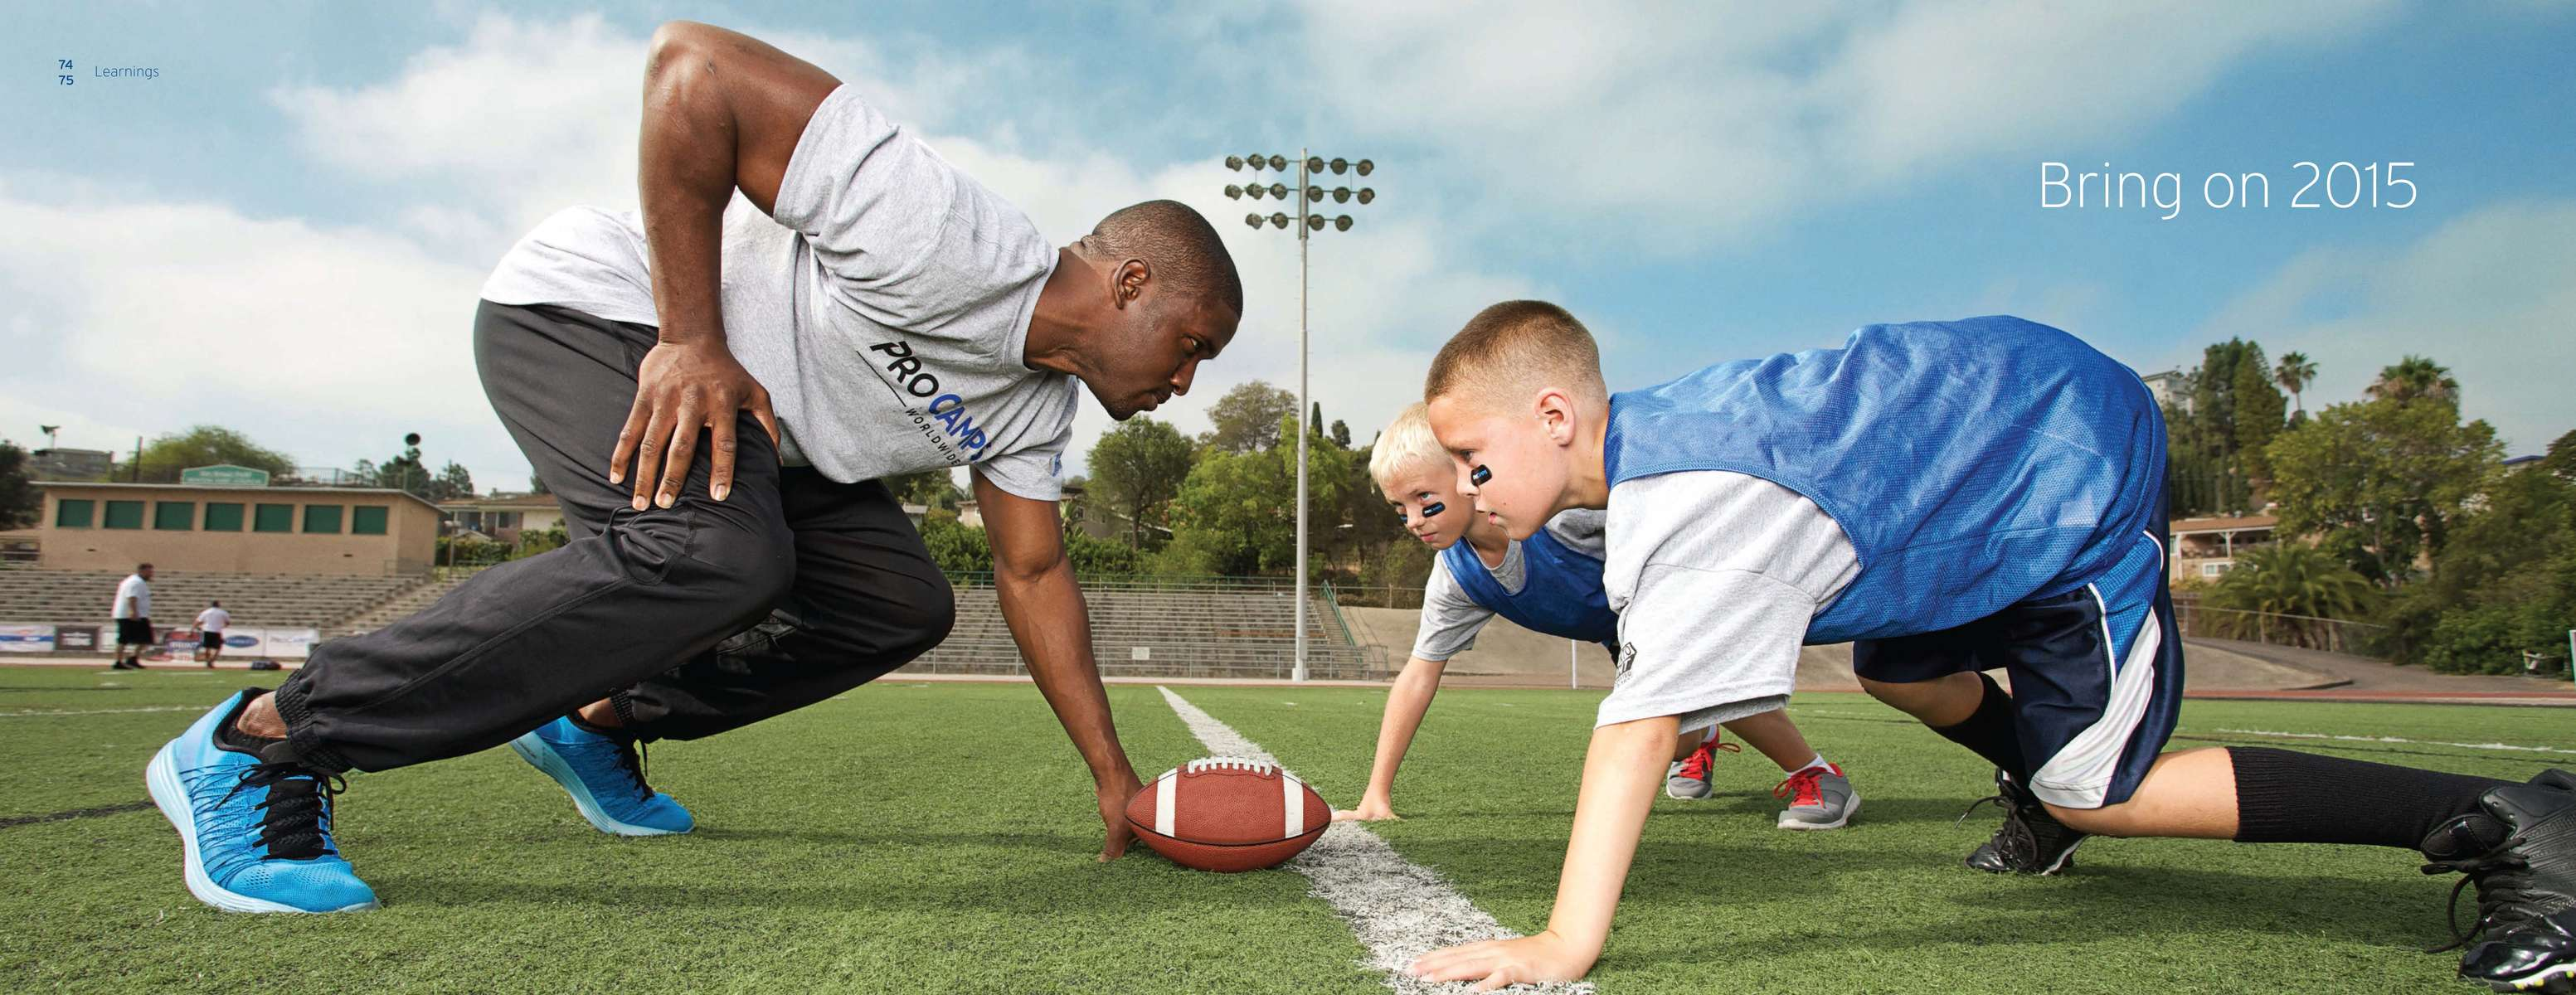 ProCamps_booklet_toprint.indd